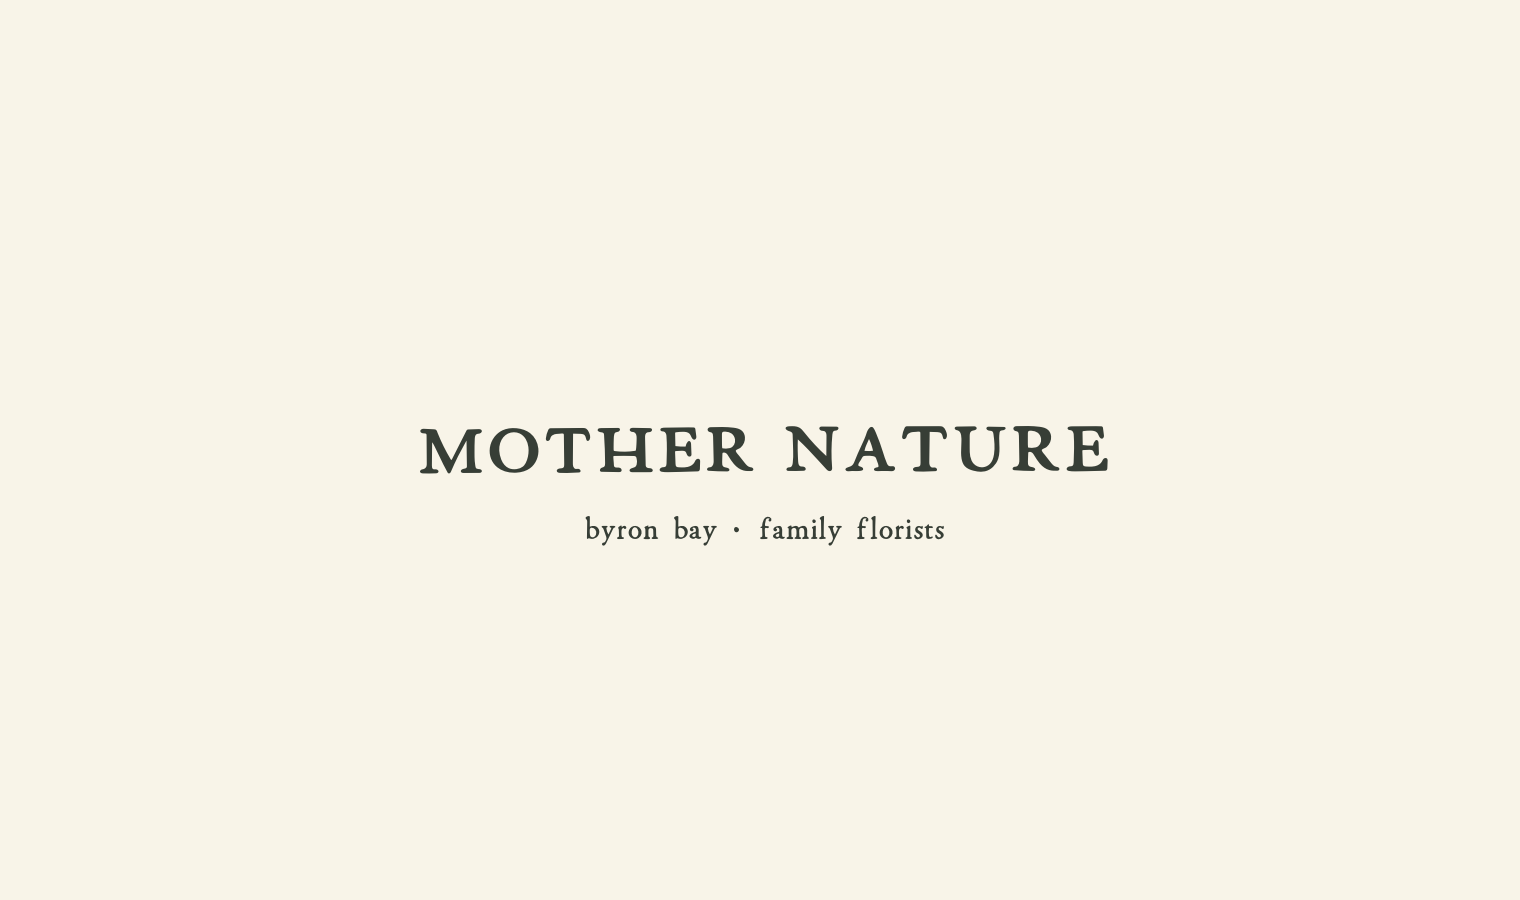 Mother-Nature-Family-Florist-branding-02.png